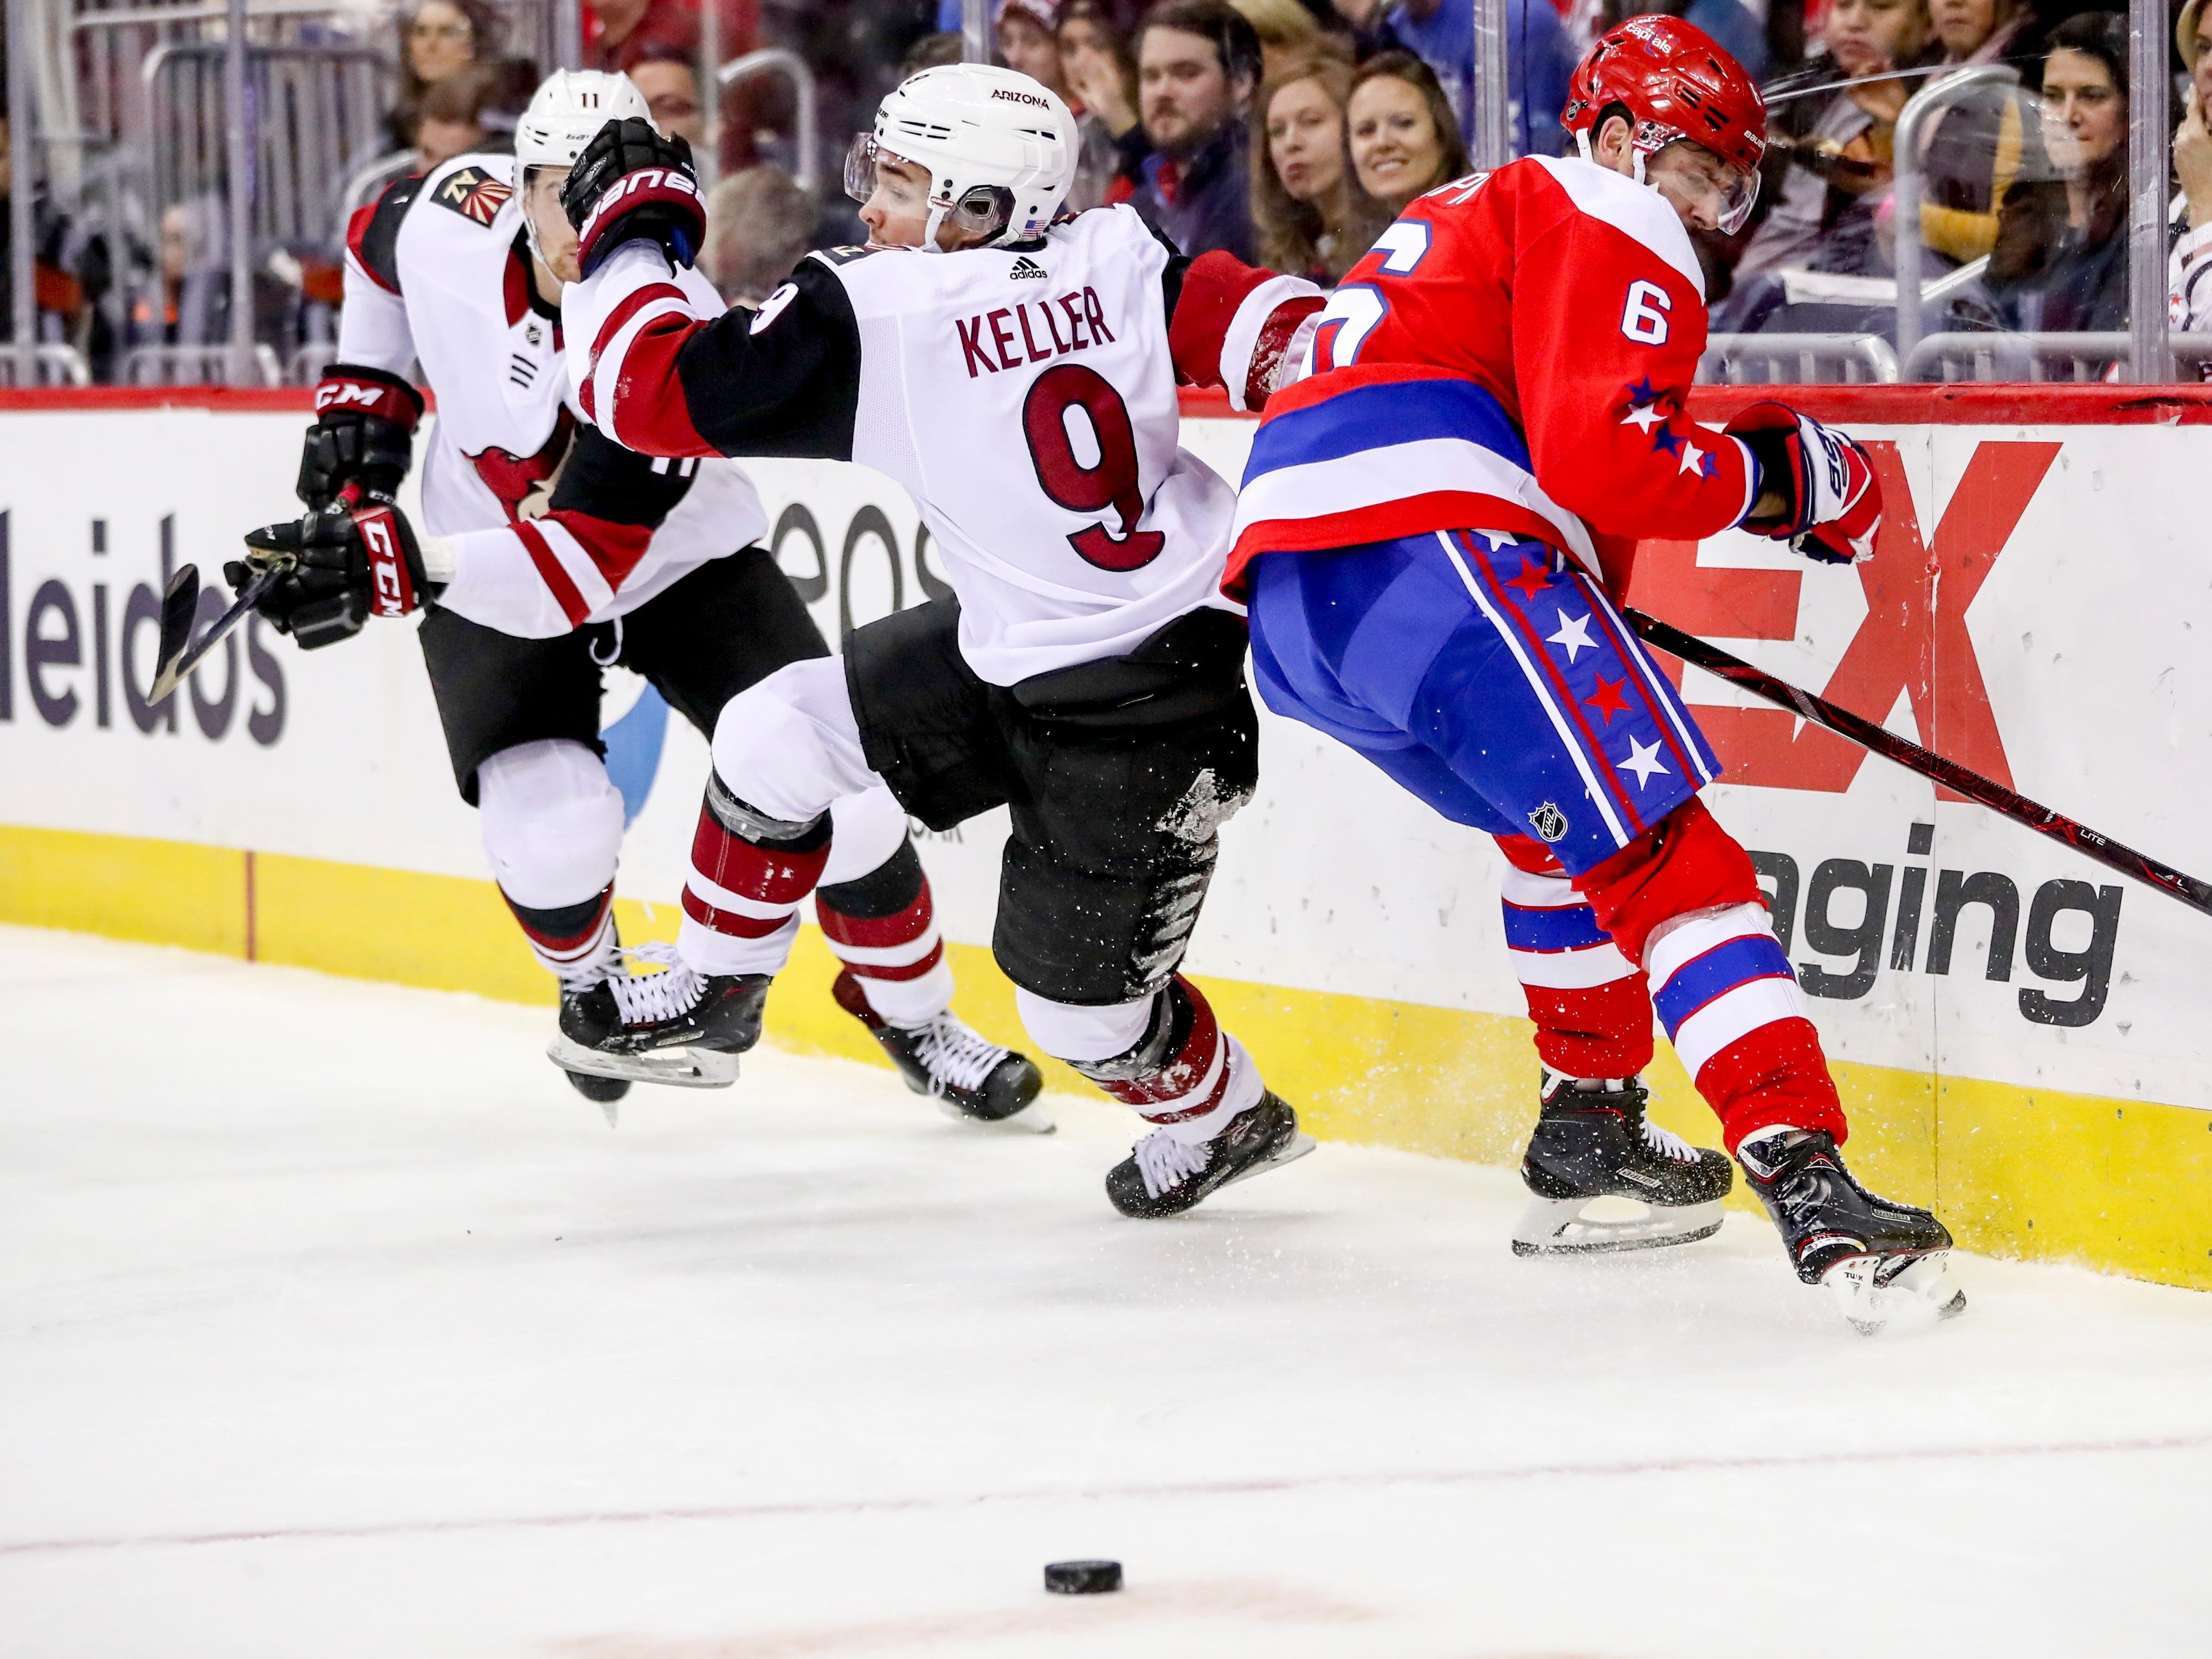 Washington Capitals defenseman Michal Kempny takes down Arizona Coyotes center Clayton Keller as they fight for a lose puck in the first period of an NHL hockey game between the Washington Capitals and the Arizona Coyotes, Sunday, Nov. 11, 2018 in Washington. (AP Photo/Andrew Harnik)